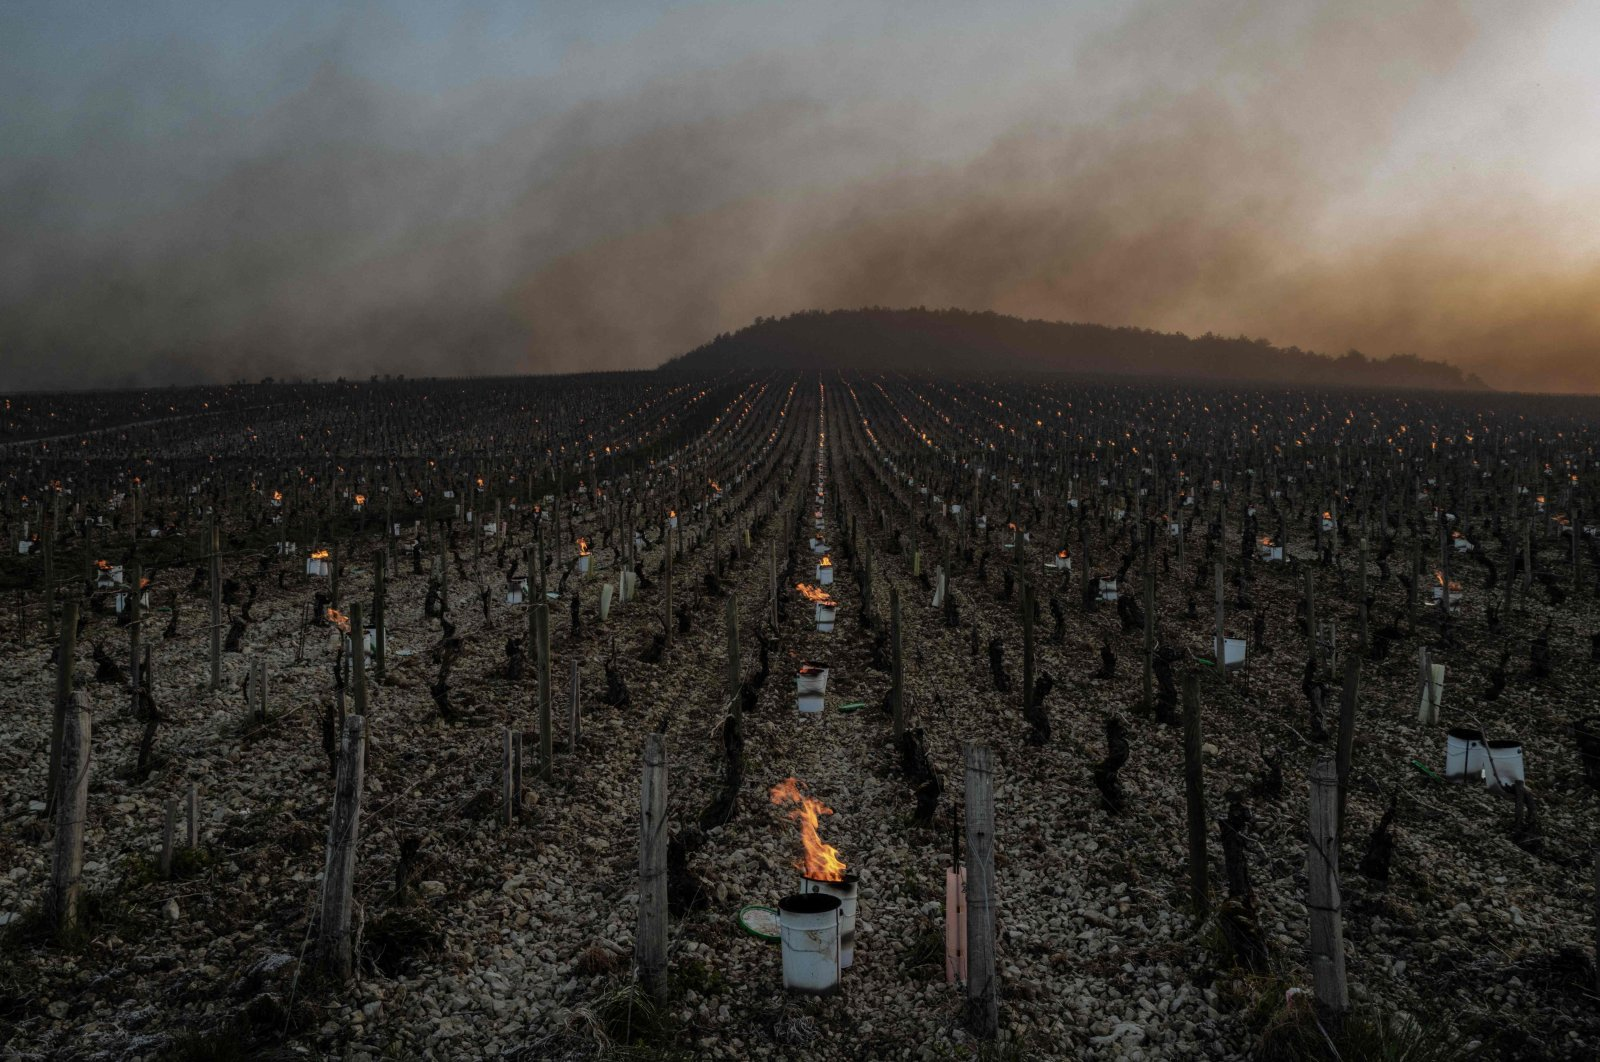 As temperatures fall below zero degrees Celsius during the night, anti-frost candles burnthrough sunrise in the Chablis vineyards near Chablis, Burgundy, France,April 7, 2021. (AFP Photo)